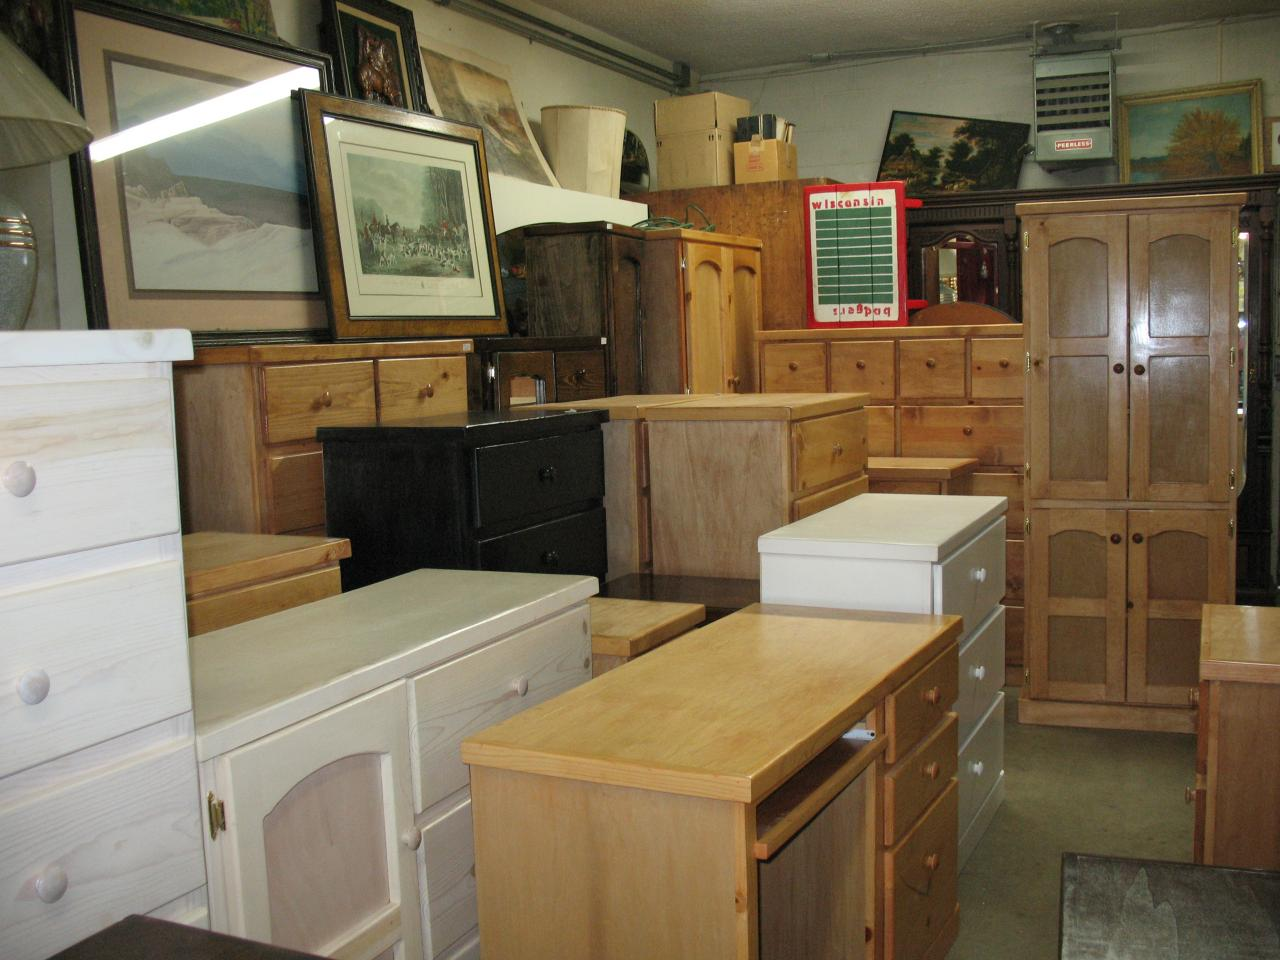 New all wood dresser · Wood dresser ... - Cheap - Wood Dressers Or Dresser @ Cheap Vintage, 25408 Narbonne Ave